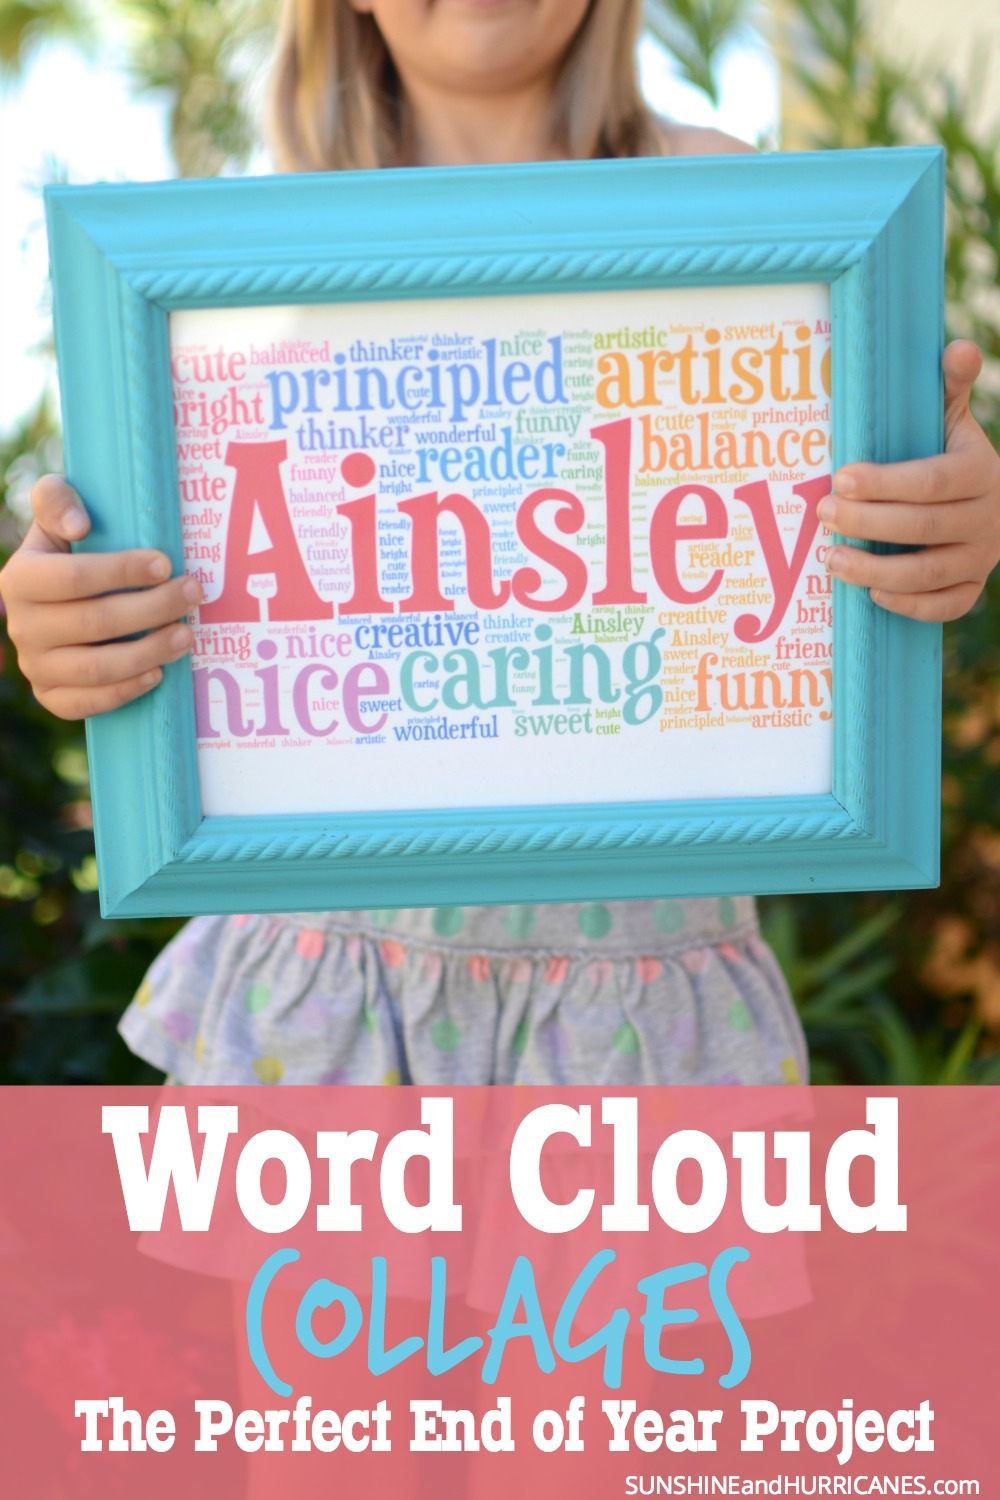 Looking for a fun and meaningful project for a kid's group? This word cloud collage is an easy, yet powerful, keepsake to make with older kids in a class, scout troop, youth group or even at a party.